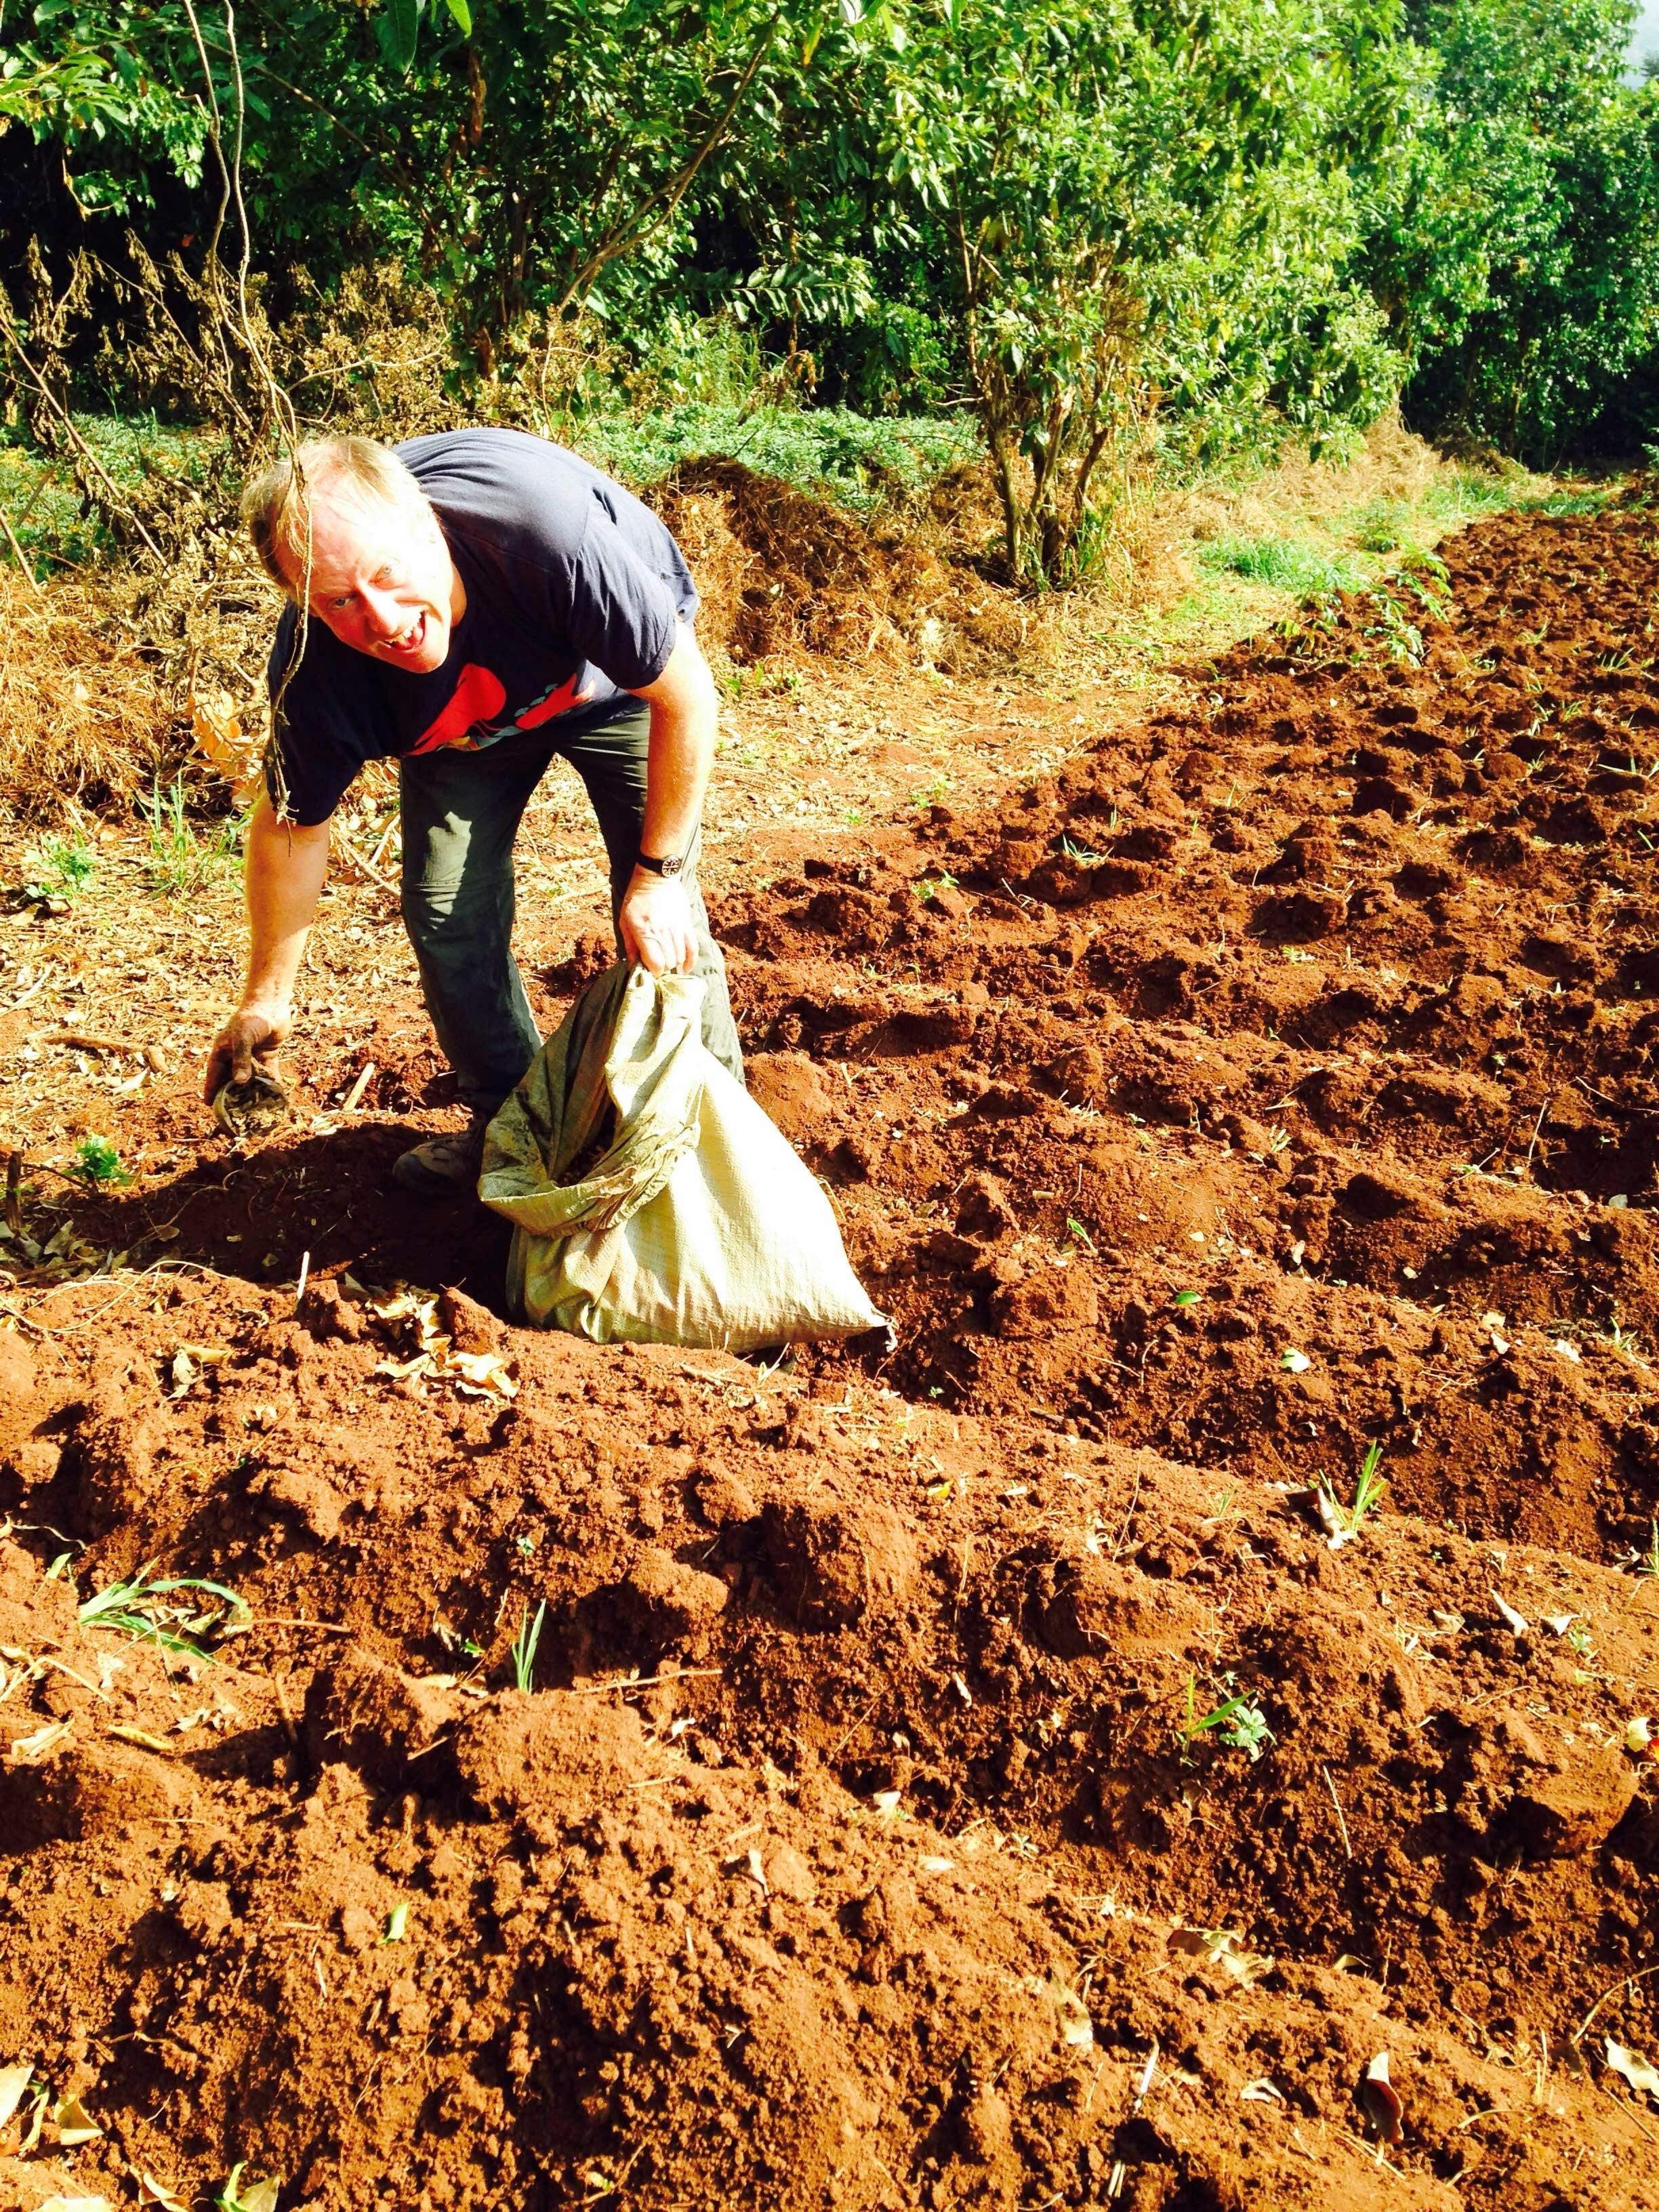 Phil is spreading manure to prepare the soil for planting beans!